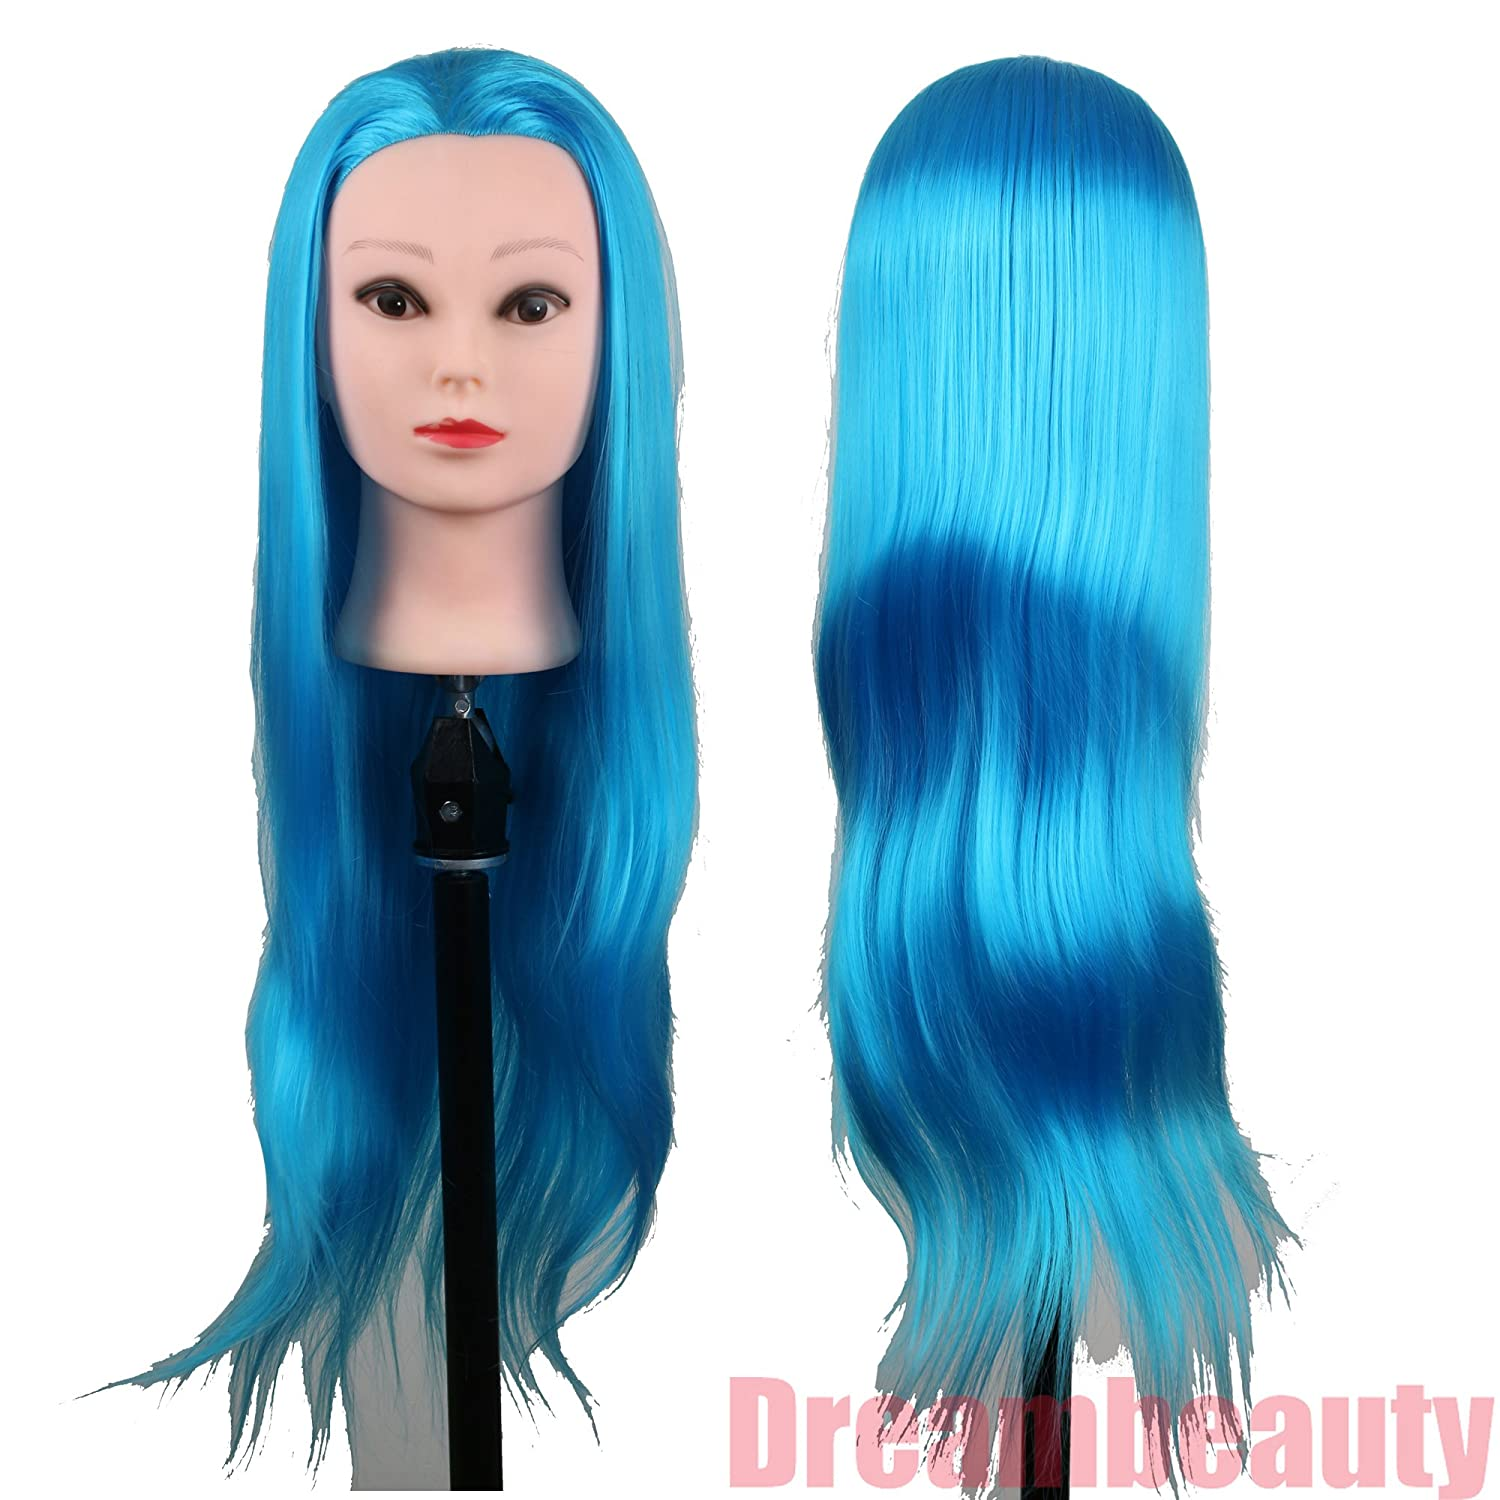 Dreambeauty Cosmetology School Practicing and Training Synthetic Manikin Green Color 28inch Qingdao Feiyang Hair Co. Ltd